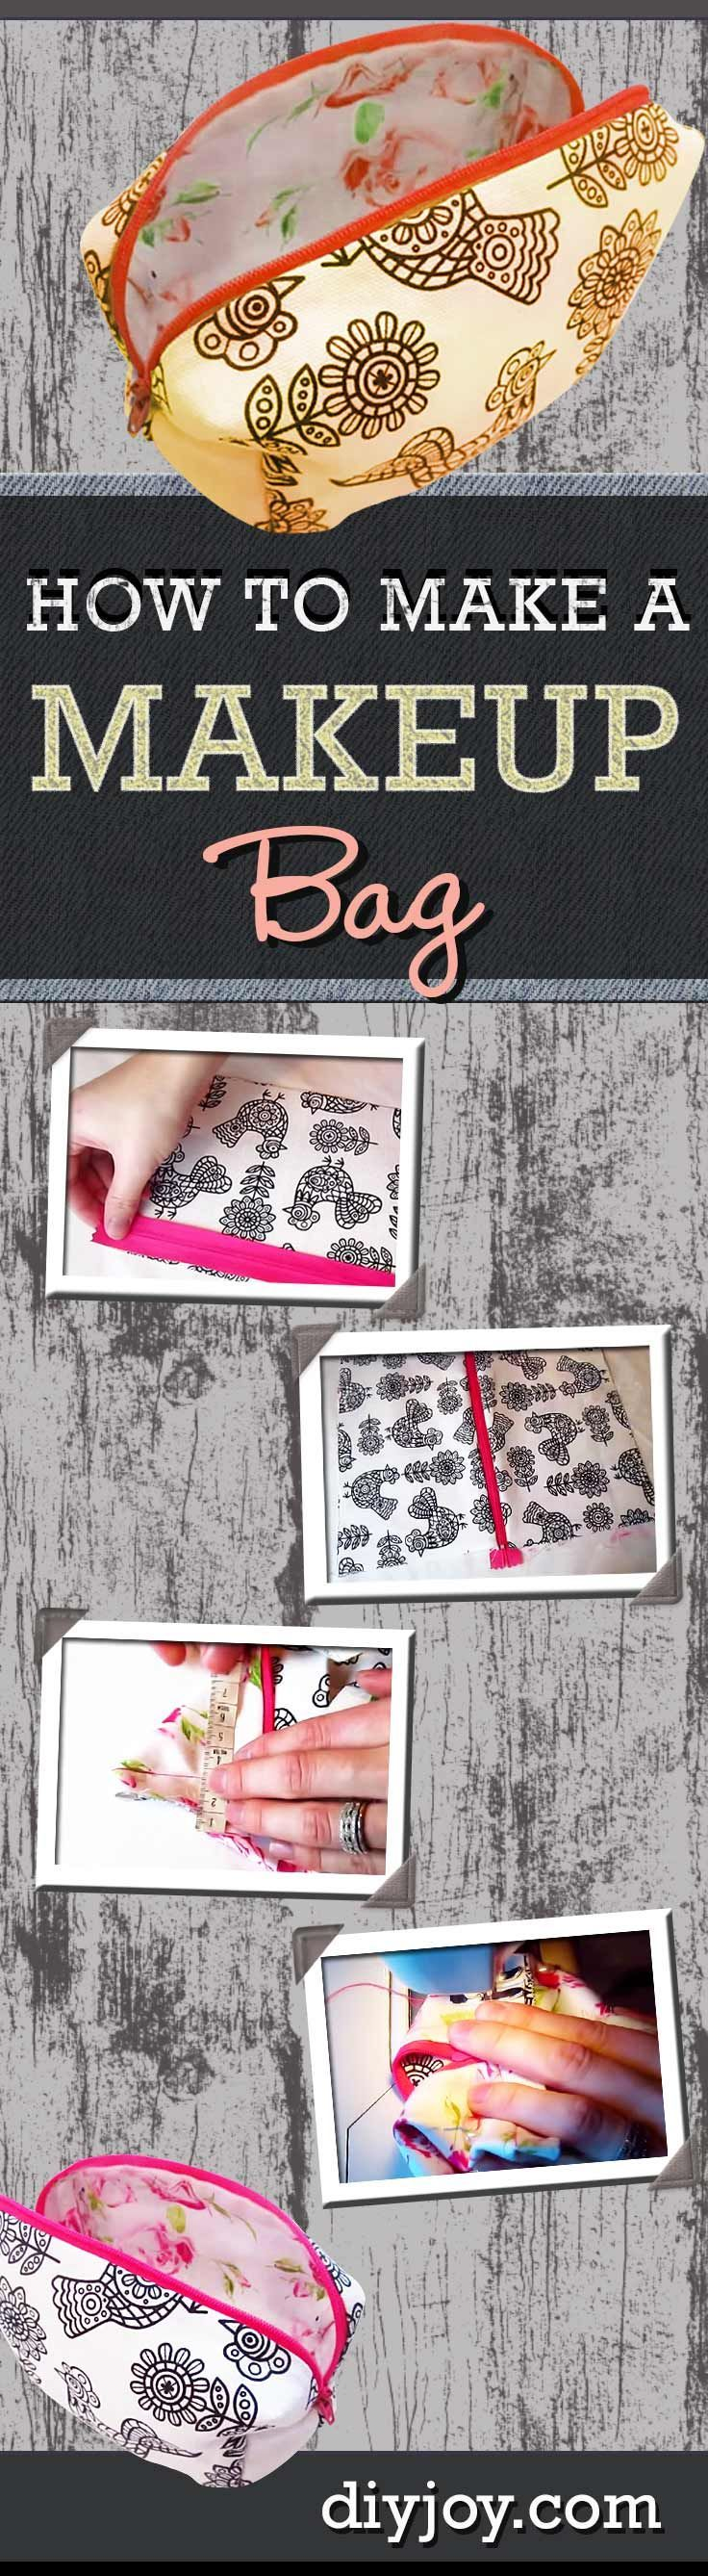 DIY Makeup Bag Tutorial and Step by Step Instructions - Cool Crafts for Teens | DIY Makeup Bag Tutorial | Easy Sewing Project for Beginners | DIY Projects & Crafts by DIY JOY at diyjoy.com/...